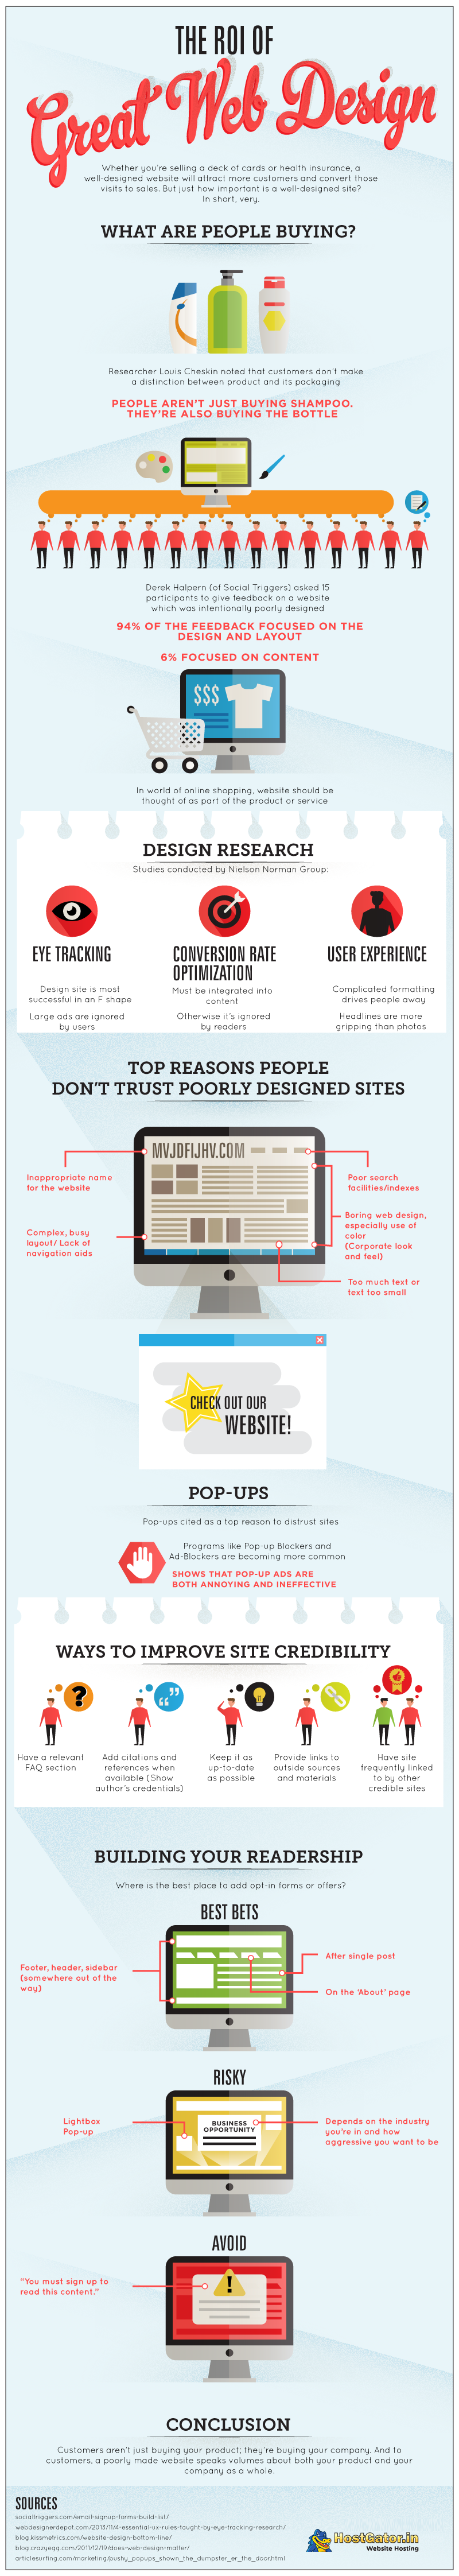 the-roi-of-great-web-design-infographic-(1) (1)